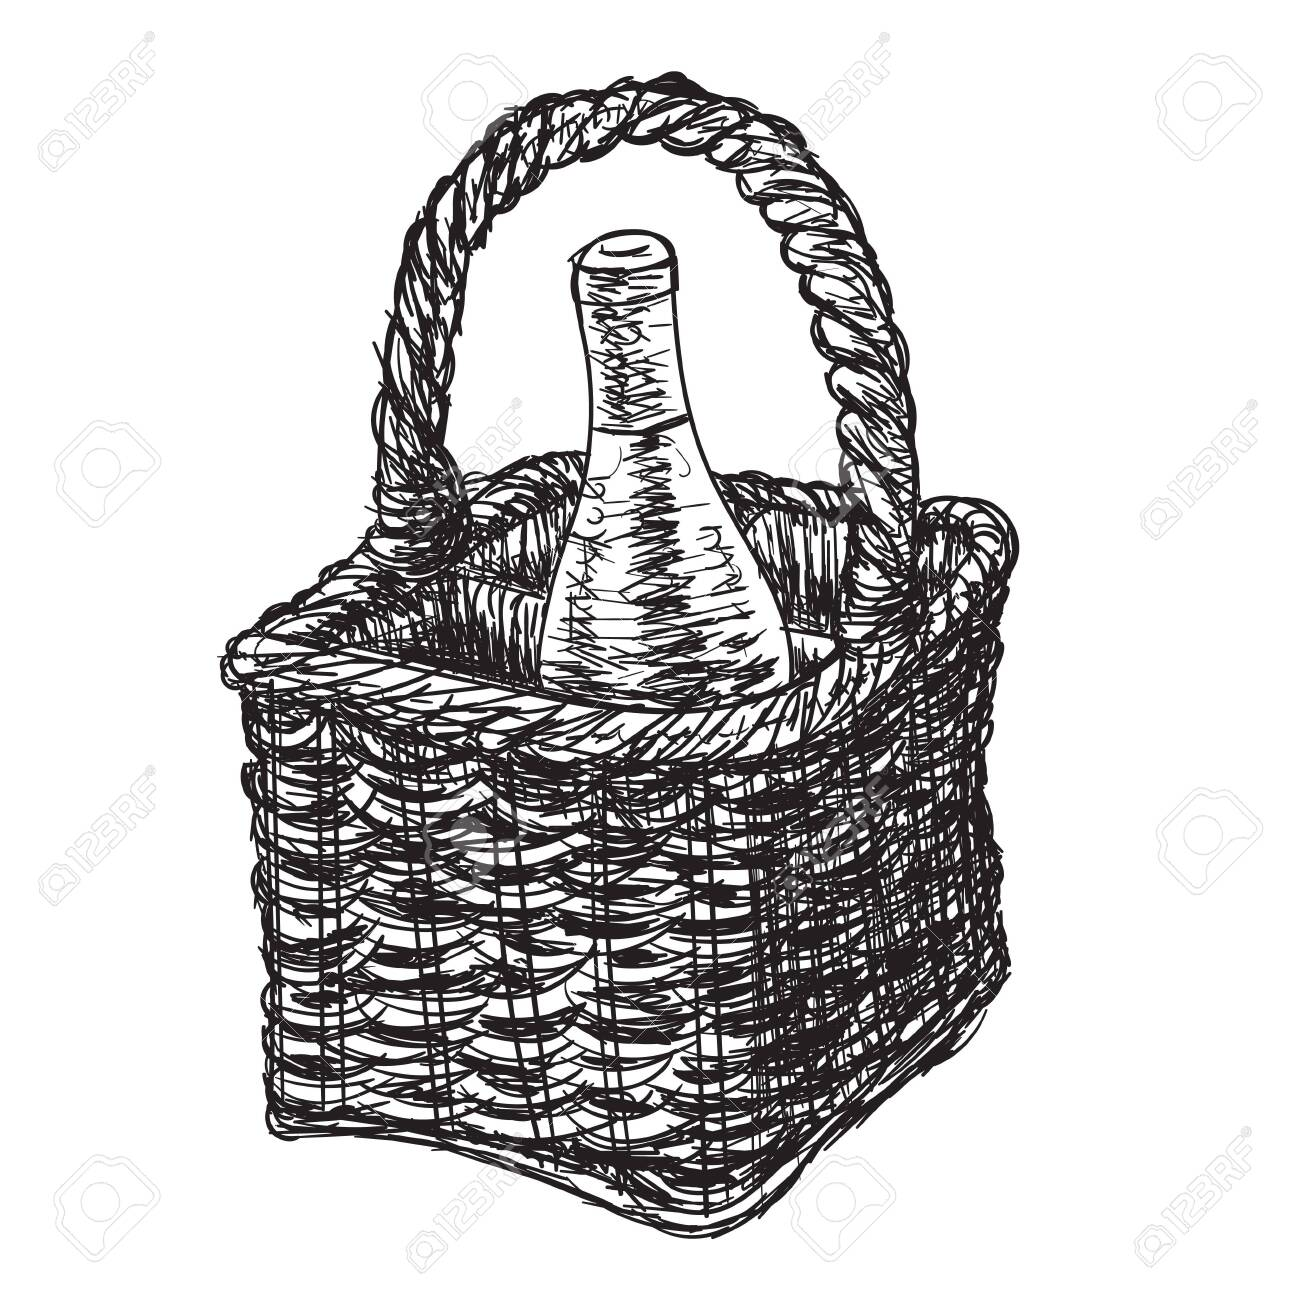 Vintage Wicker Picnic Hamper Bottle Of Wine On An Isolated White Royalty Free Cliparts Vectors And Stock Illustration Image 129196053